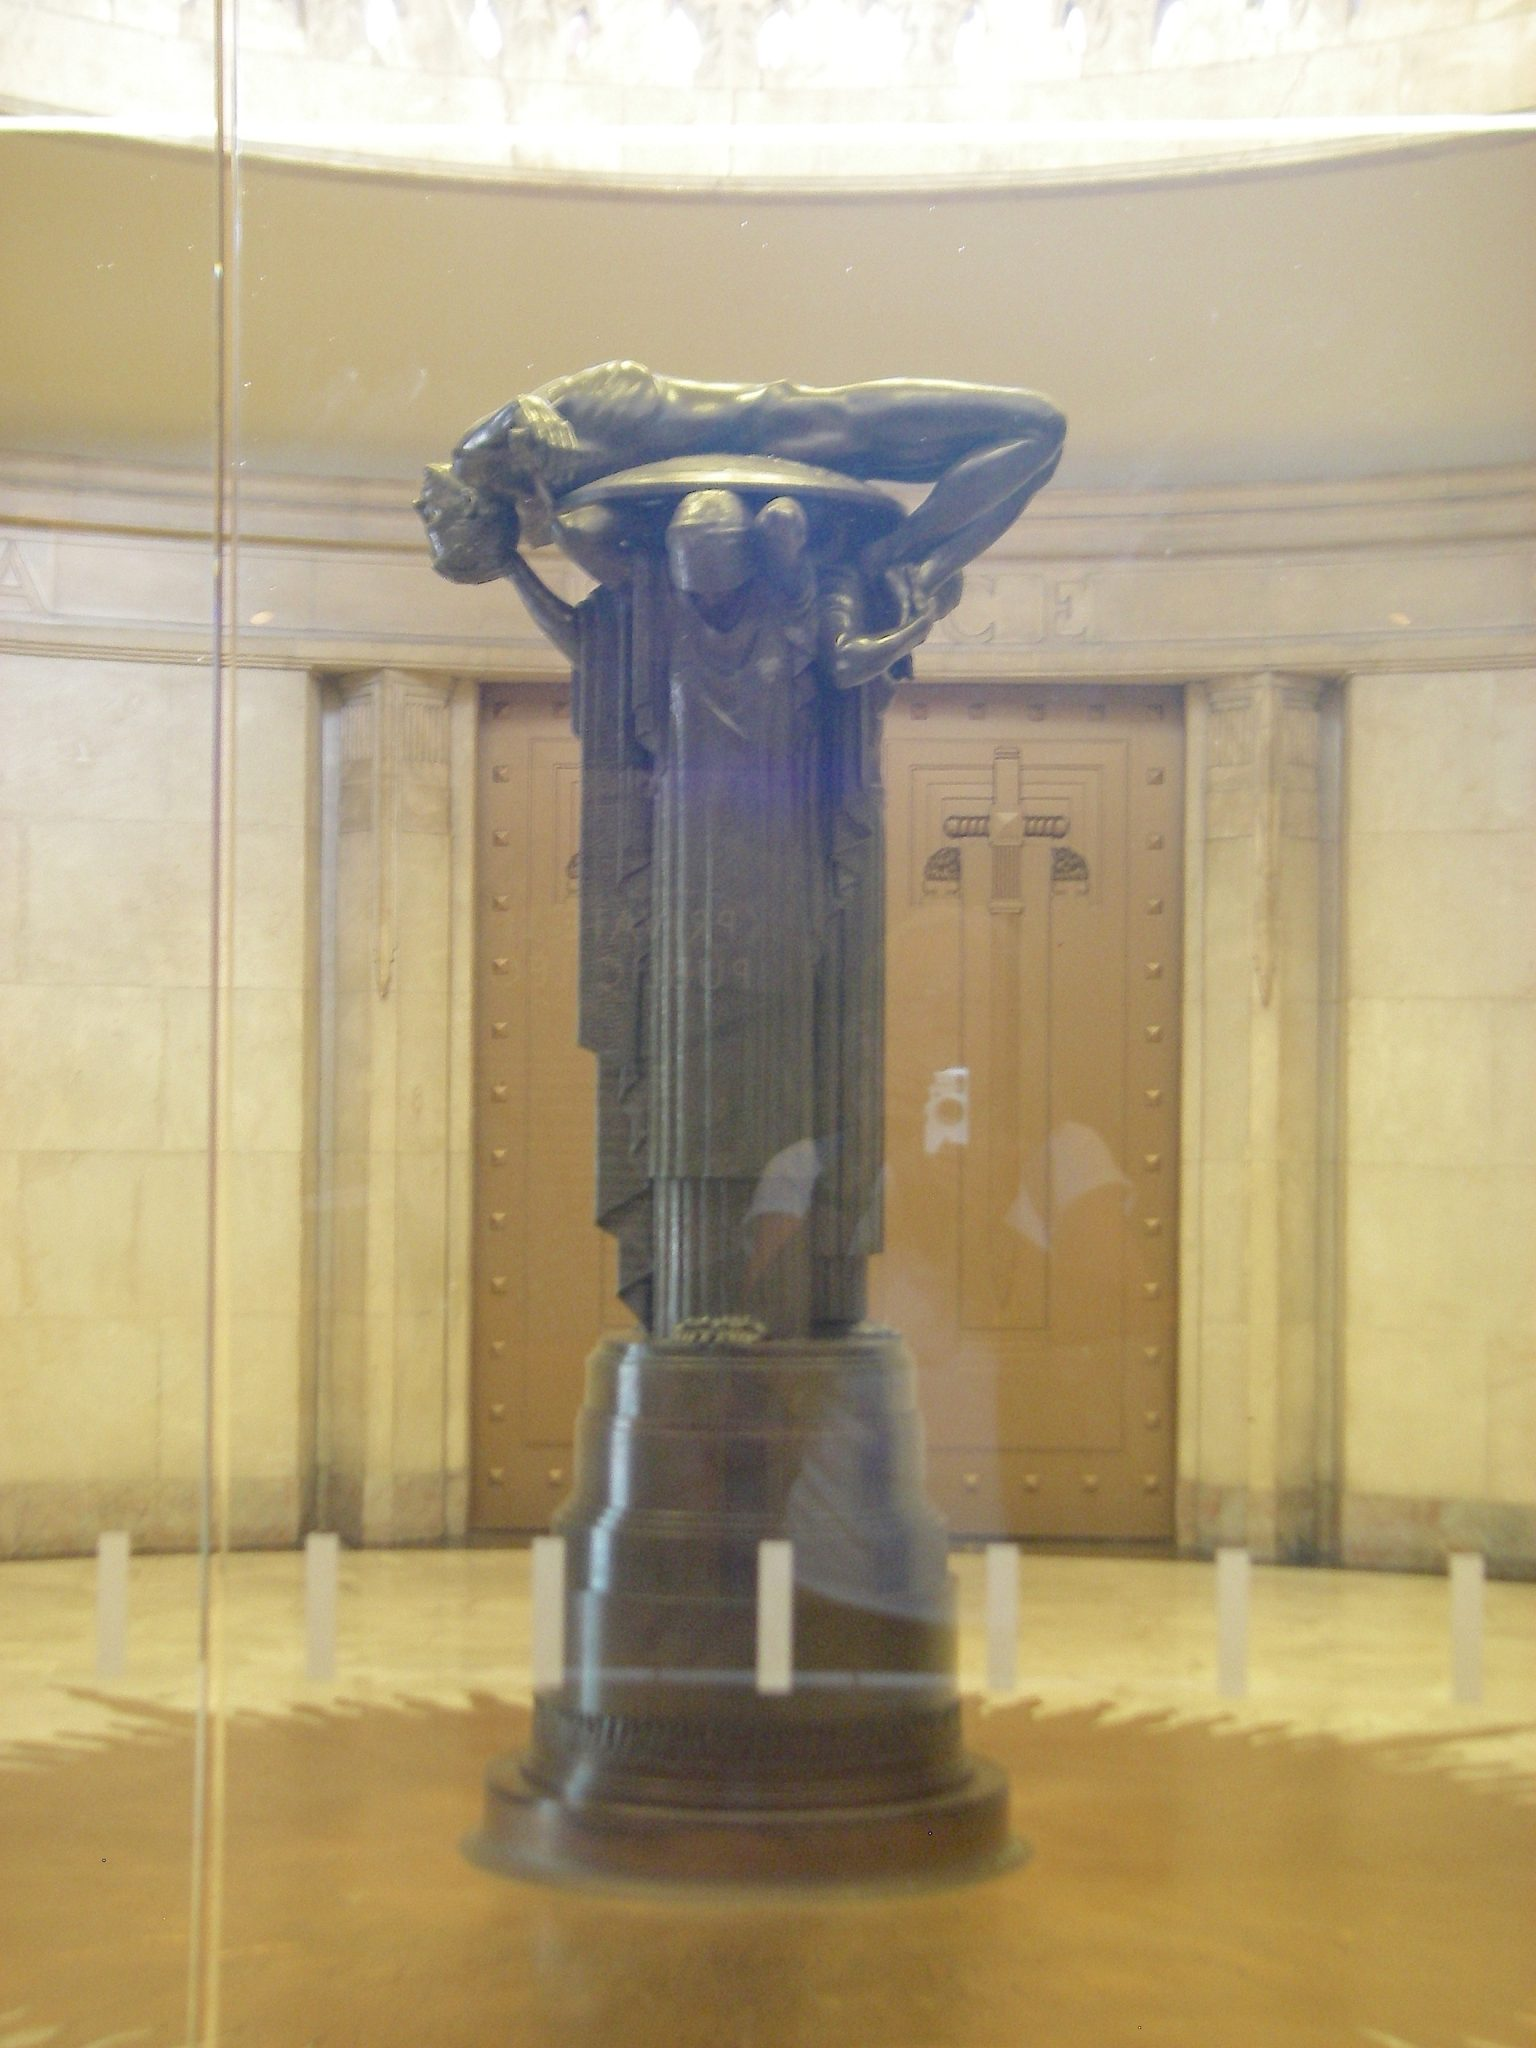 105. The sculpture depicts a fallen ANZAC warrior returning to his land in glory, in the manner of an ancient Grecian soldier, carried on his shield and sword, supported by wives, mother